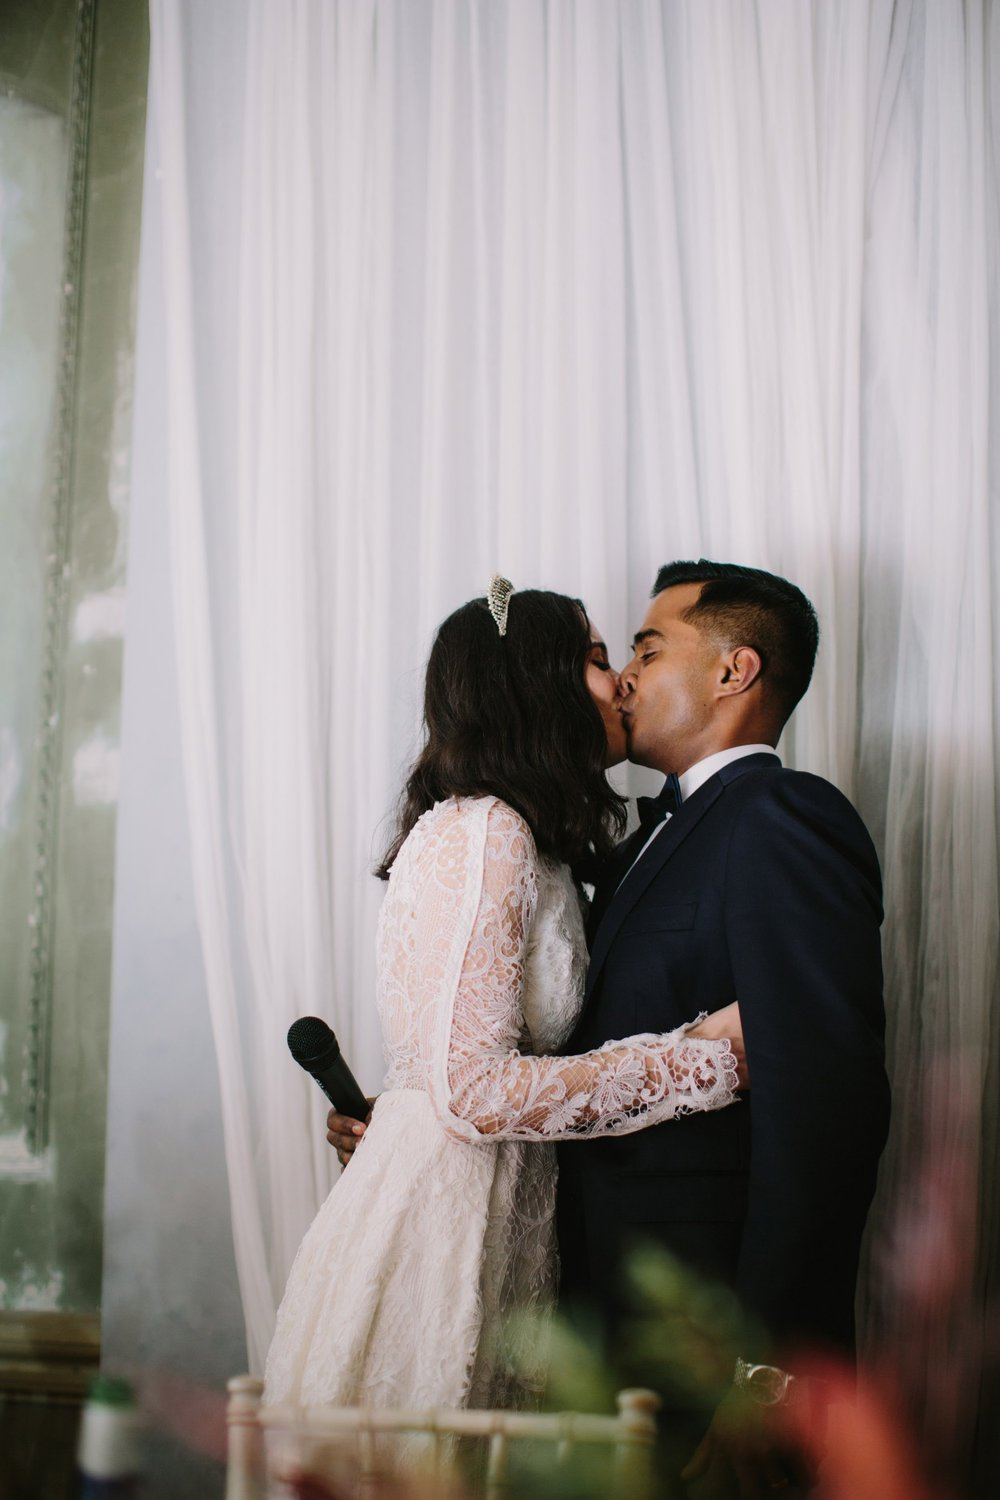 I-Got-You-Babe-Weddings-The-127George-Ballroom-St-Kilda-Wedding-Amy-Abhi.jpg